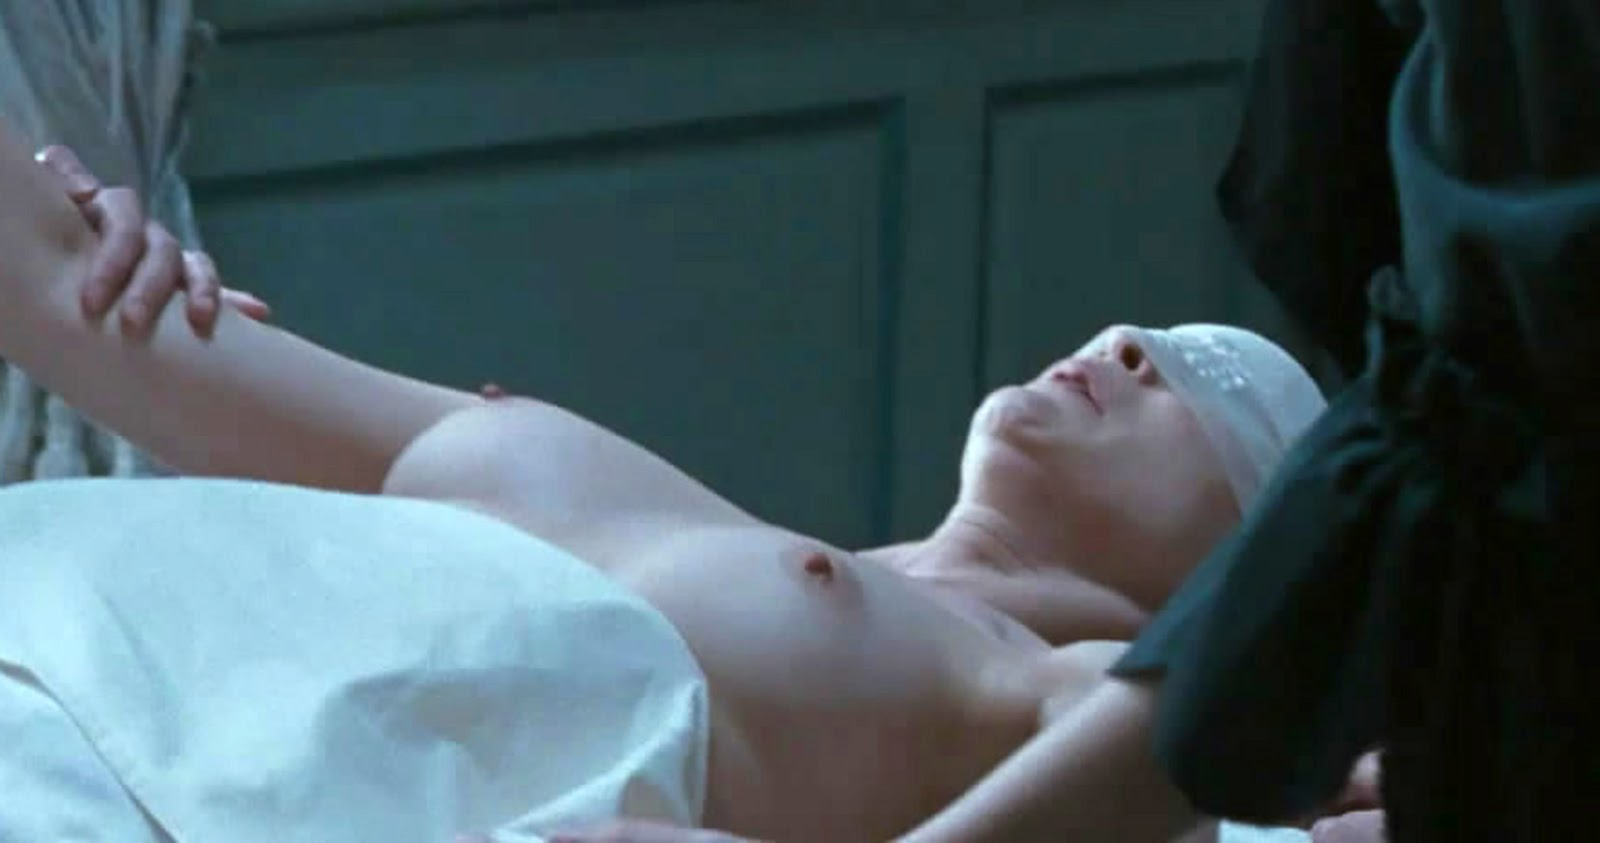 Opinion Vera farmiga nude spread